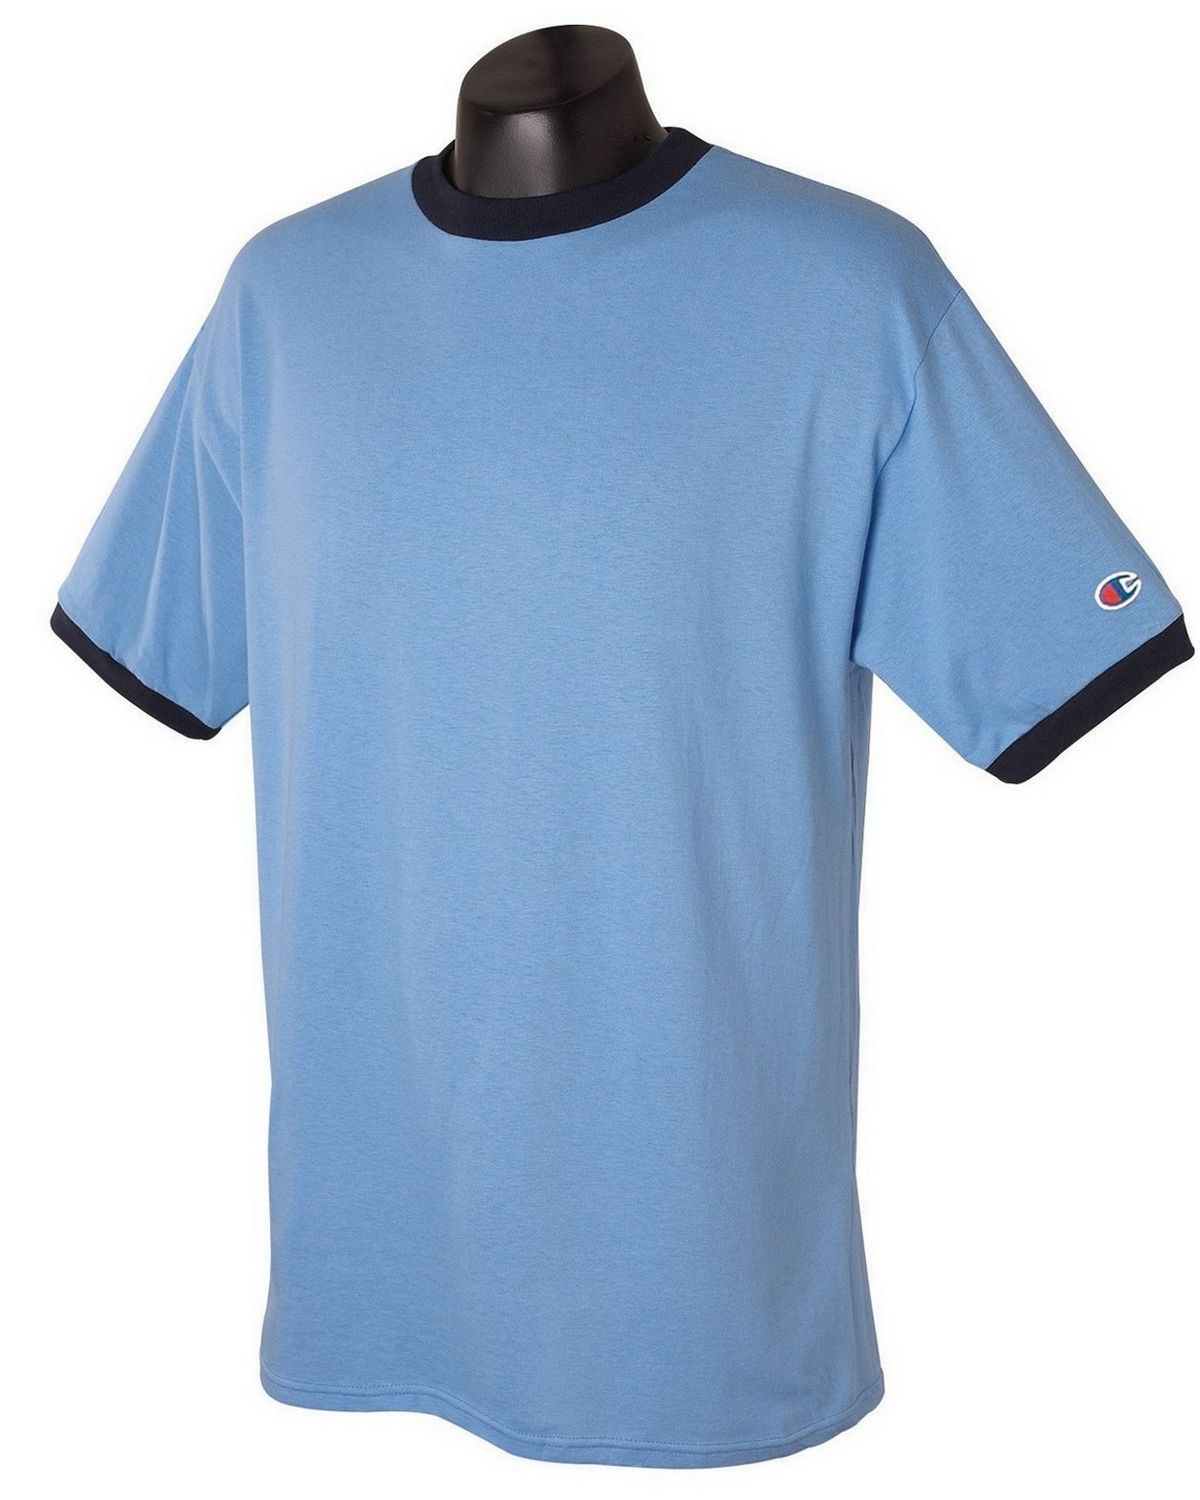 Champion T1396 Cotton Ringer T Shirt - White/Navy - L T1396